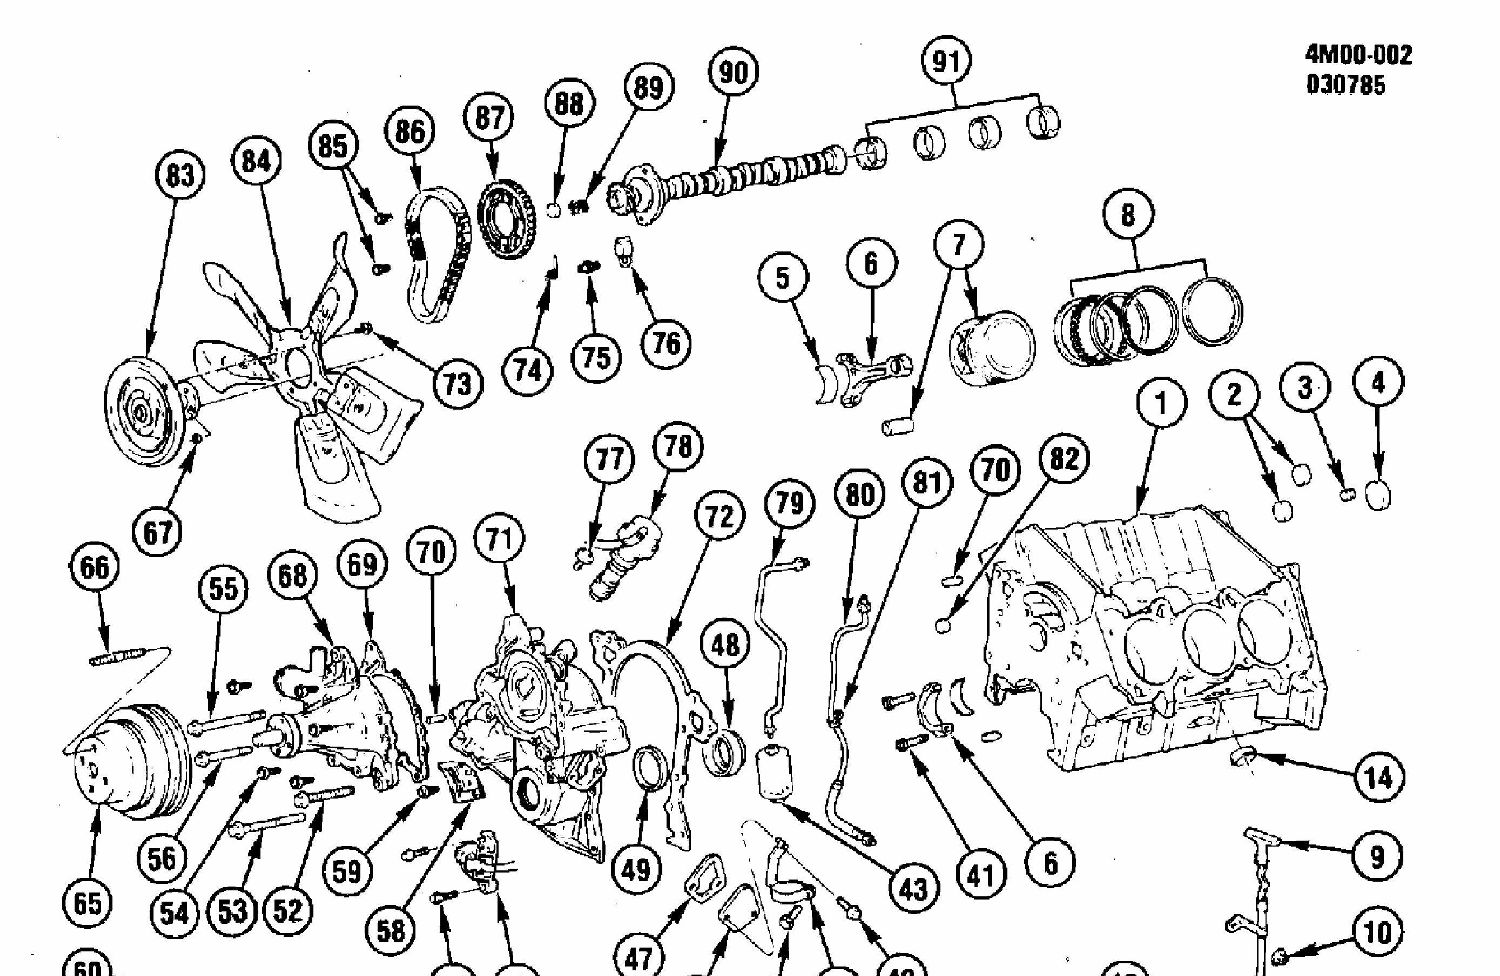 Buick 3800 Engine Diagram Wiring Library Pontiac Grand Prix And Mechanical Rh Gnttype Org Series 2 Of